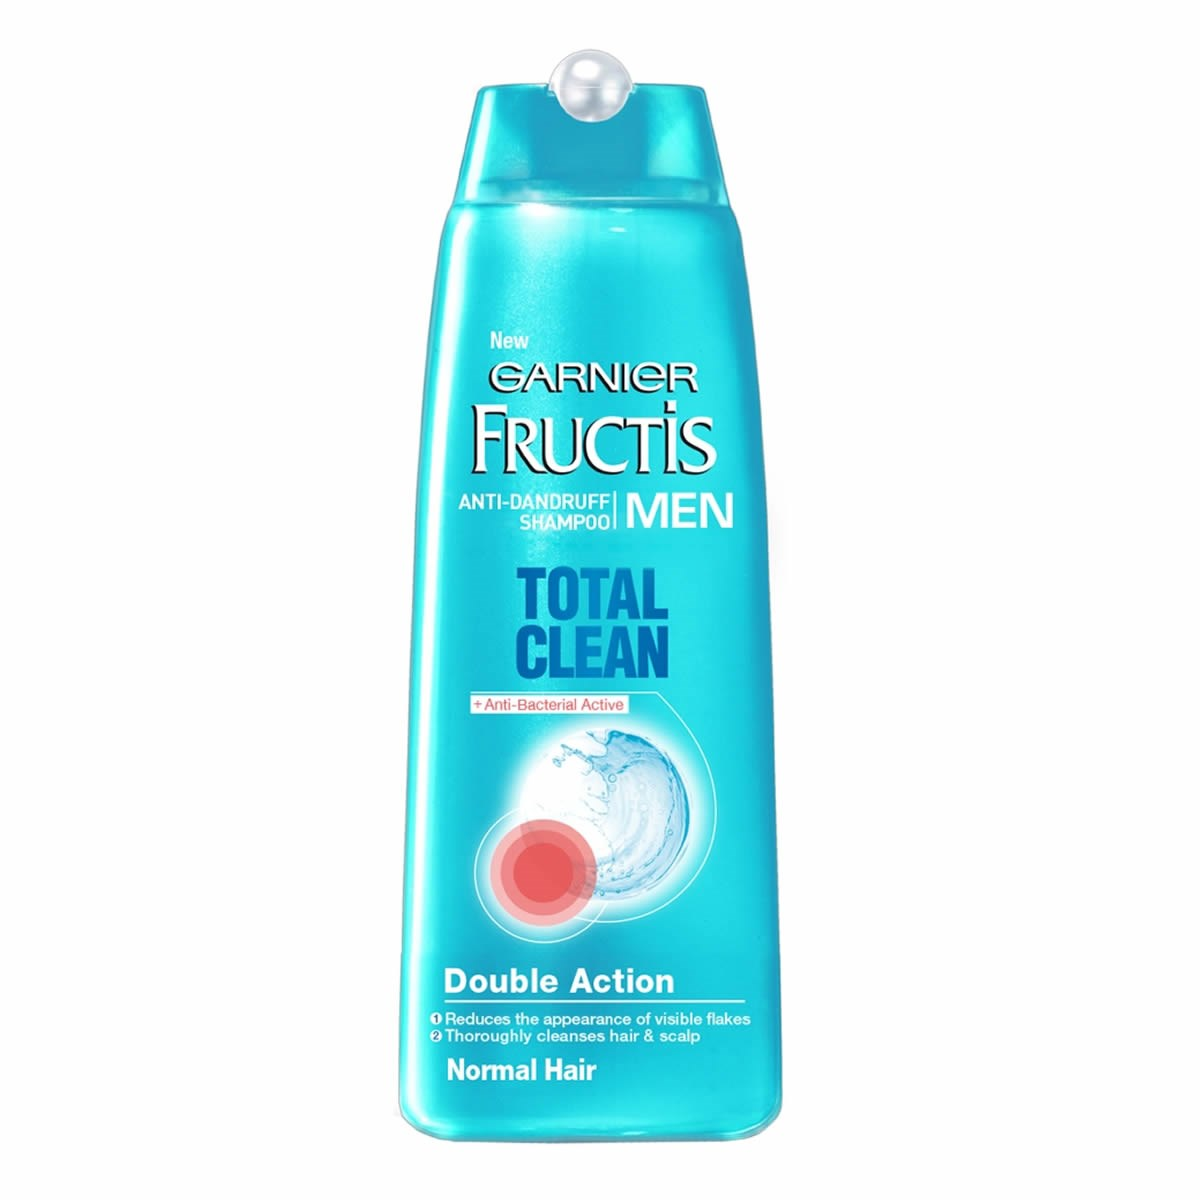 Garnier Fructis Men Total Clean & Anti Dandruff Shampoo